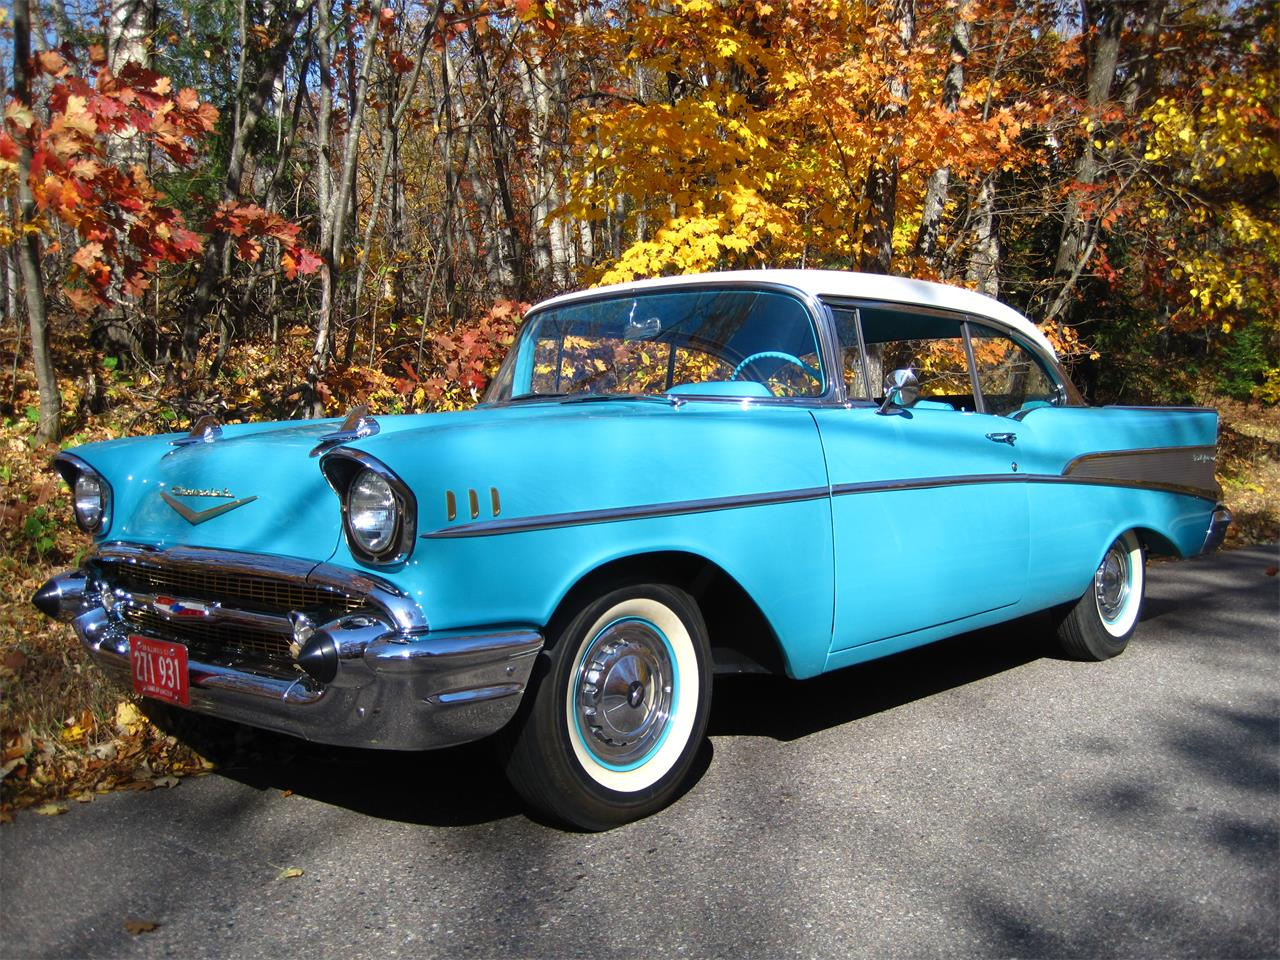 Large Picture of Classic '57 Chevrolet Bel Air - $55,500.00 - MXZH